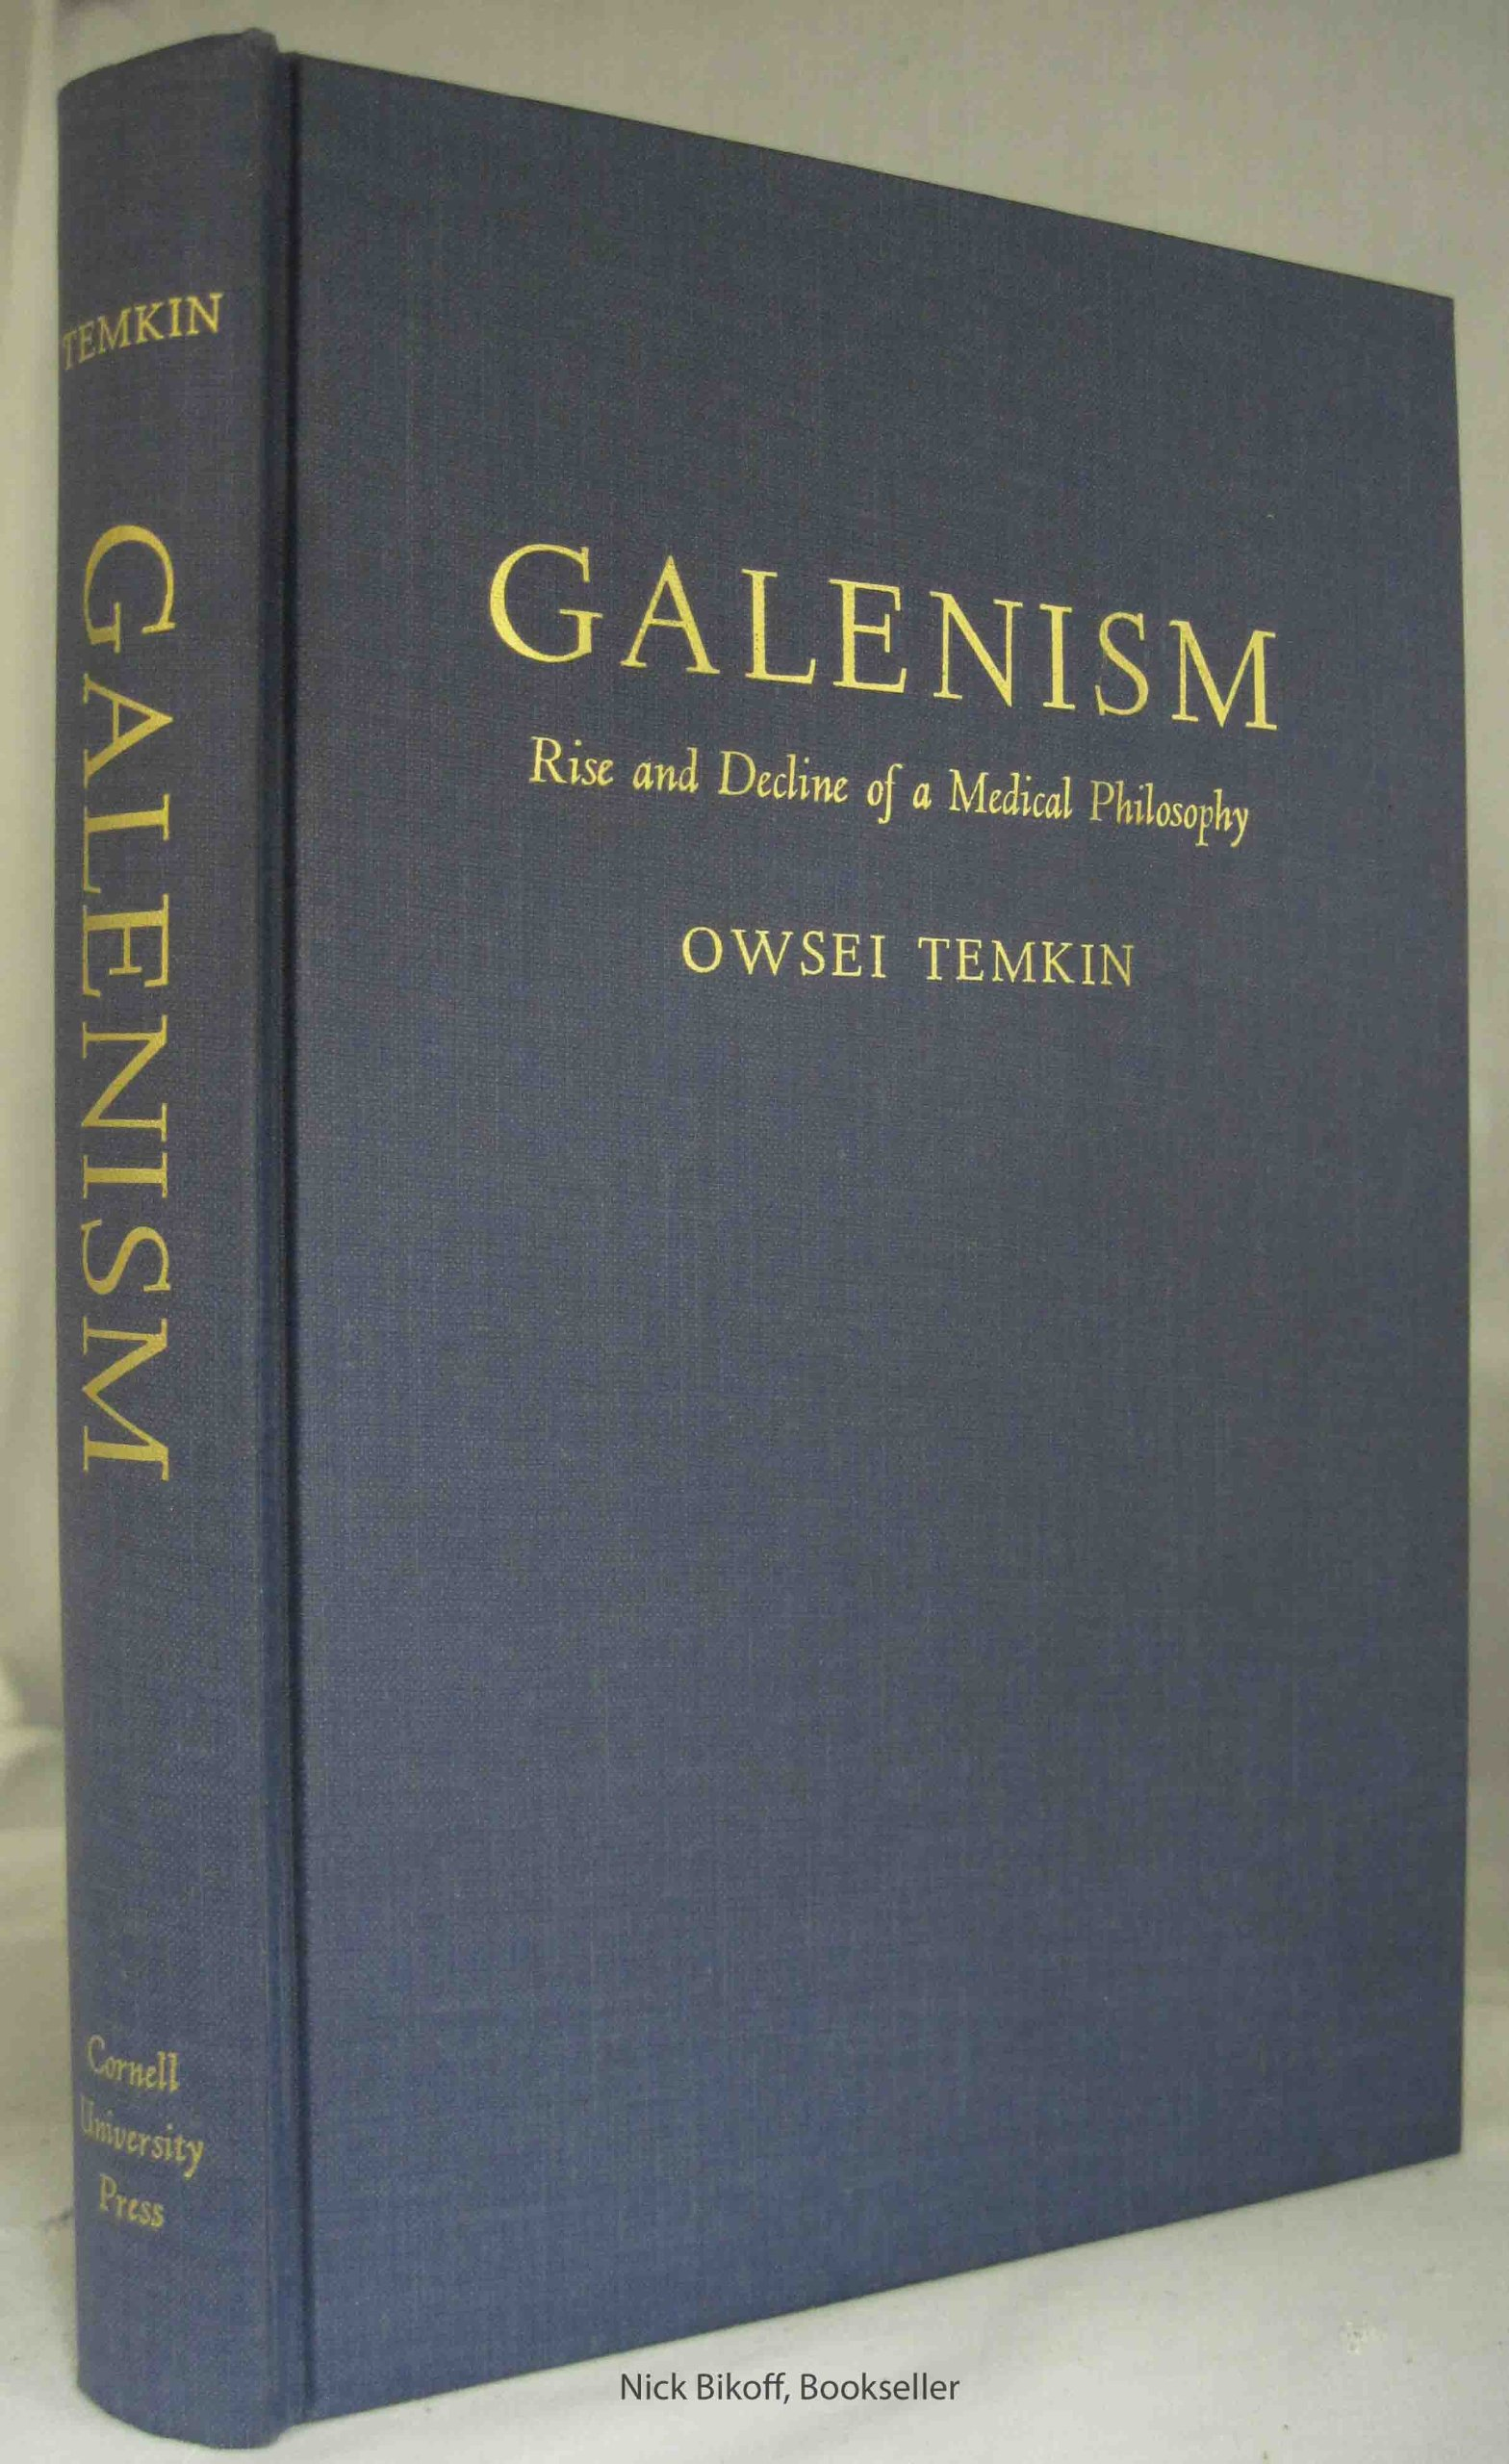 Galenism: Rise and Decline of a Medical Philosophy